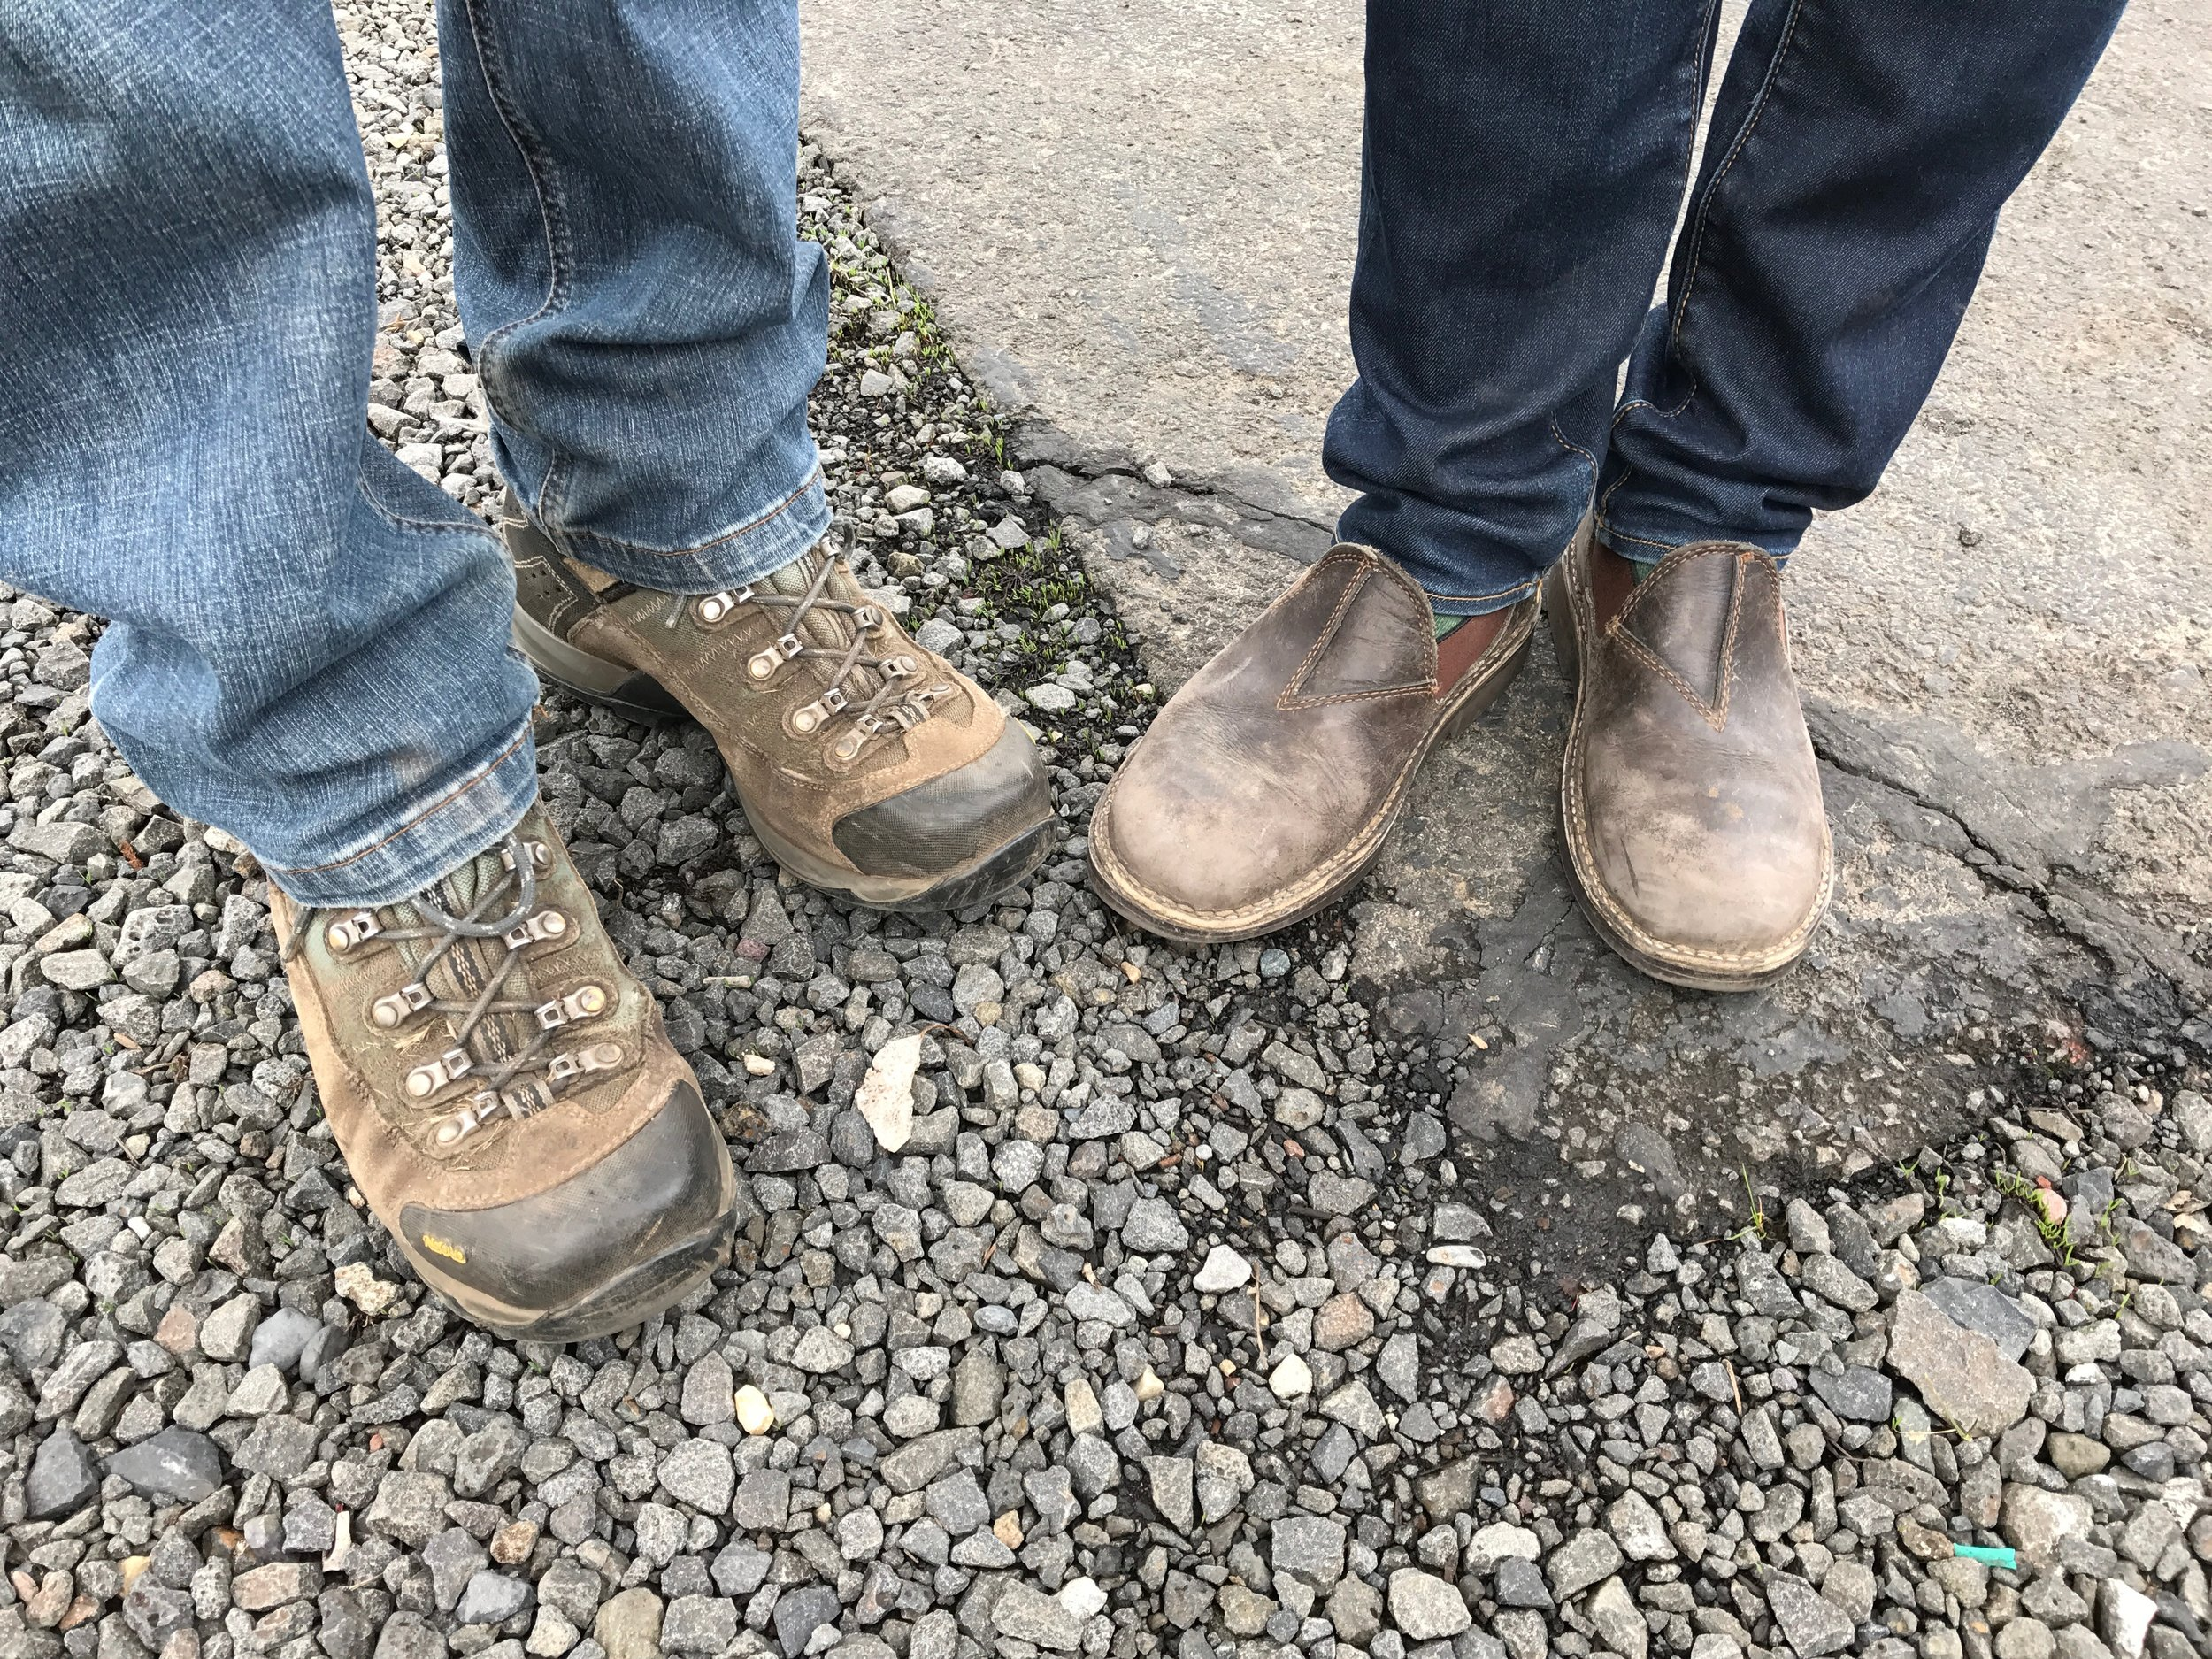 Practical footwear worn by Steven Thompson and Kris Fade of  Analemma Wines